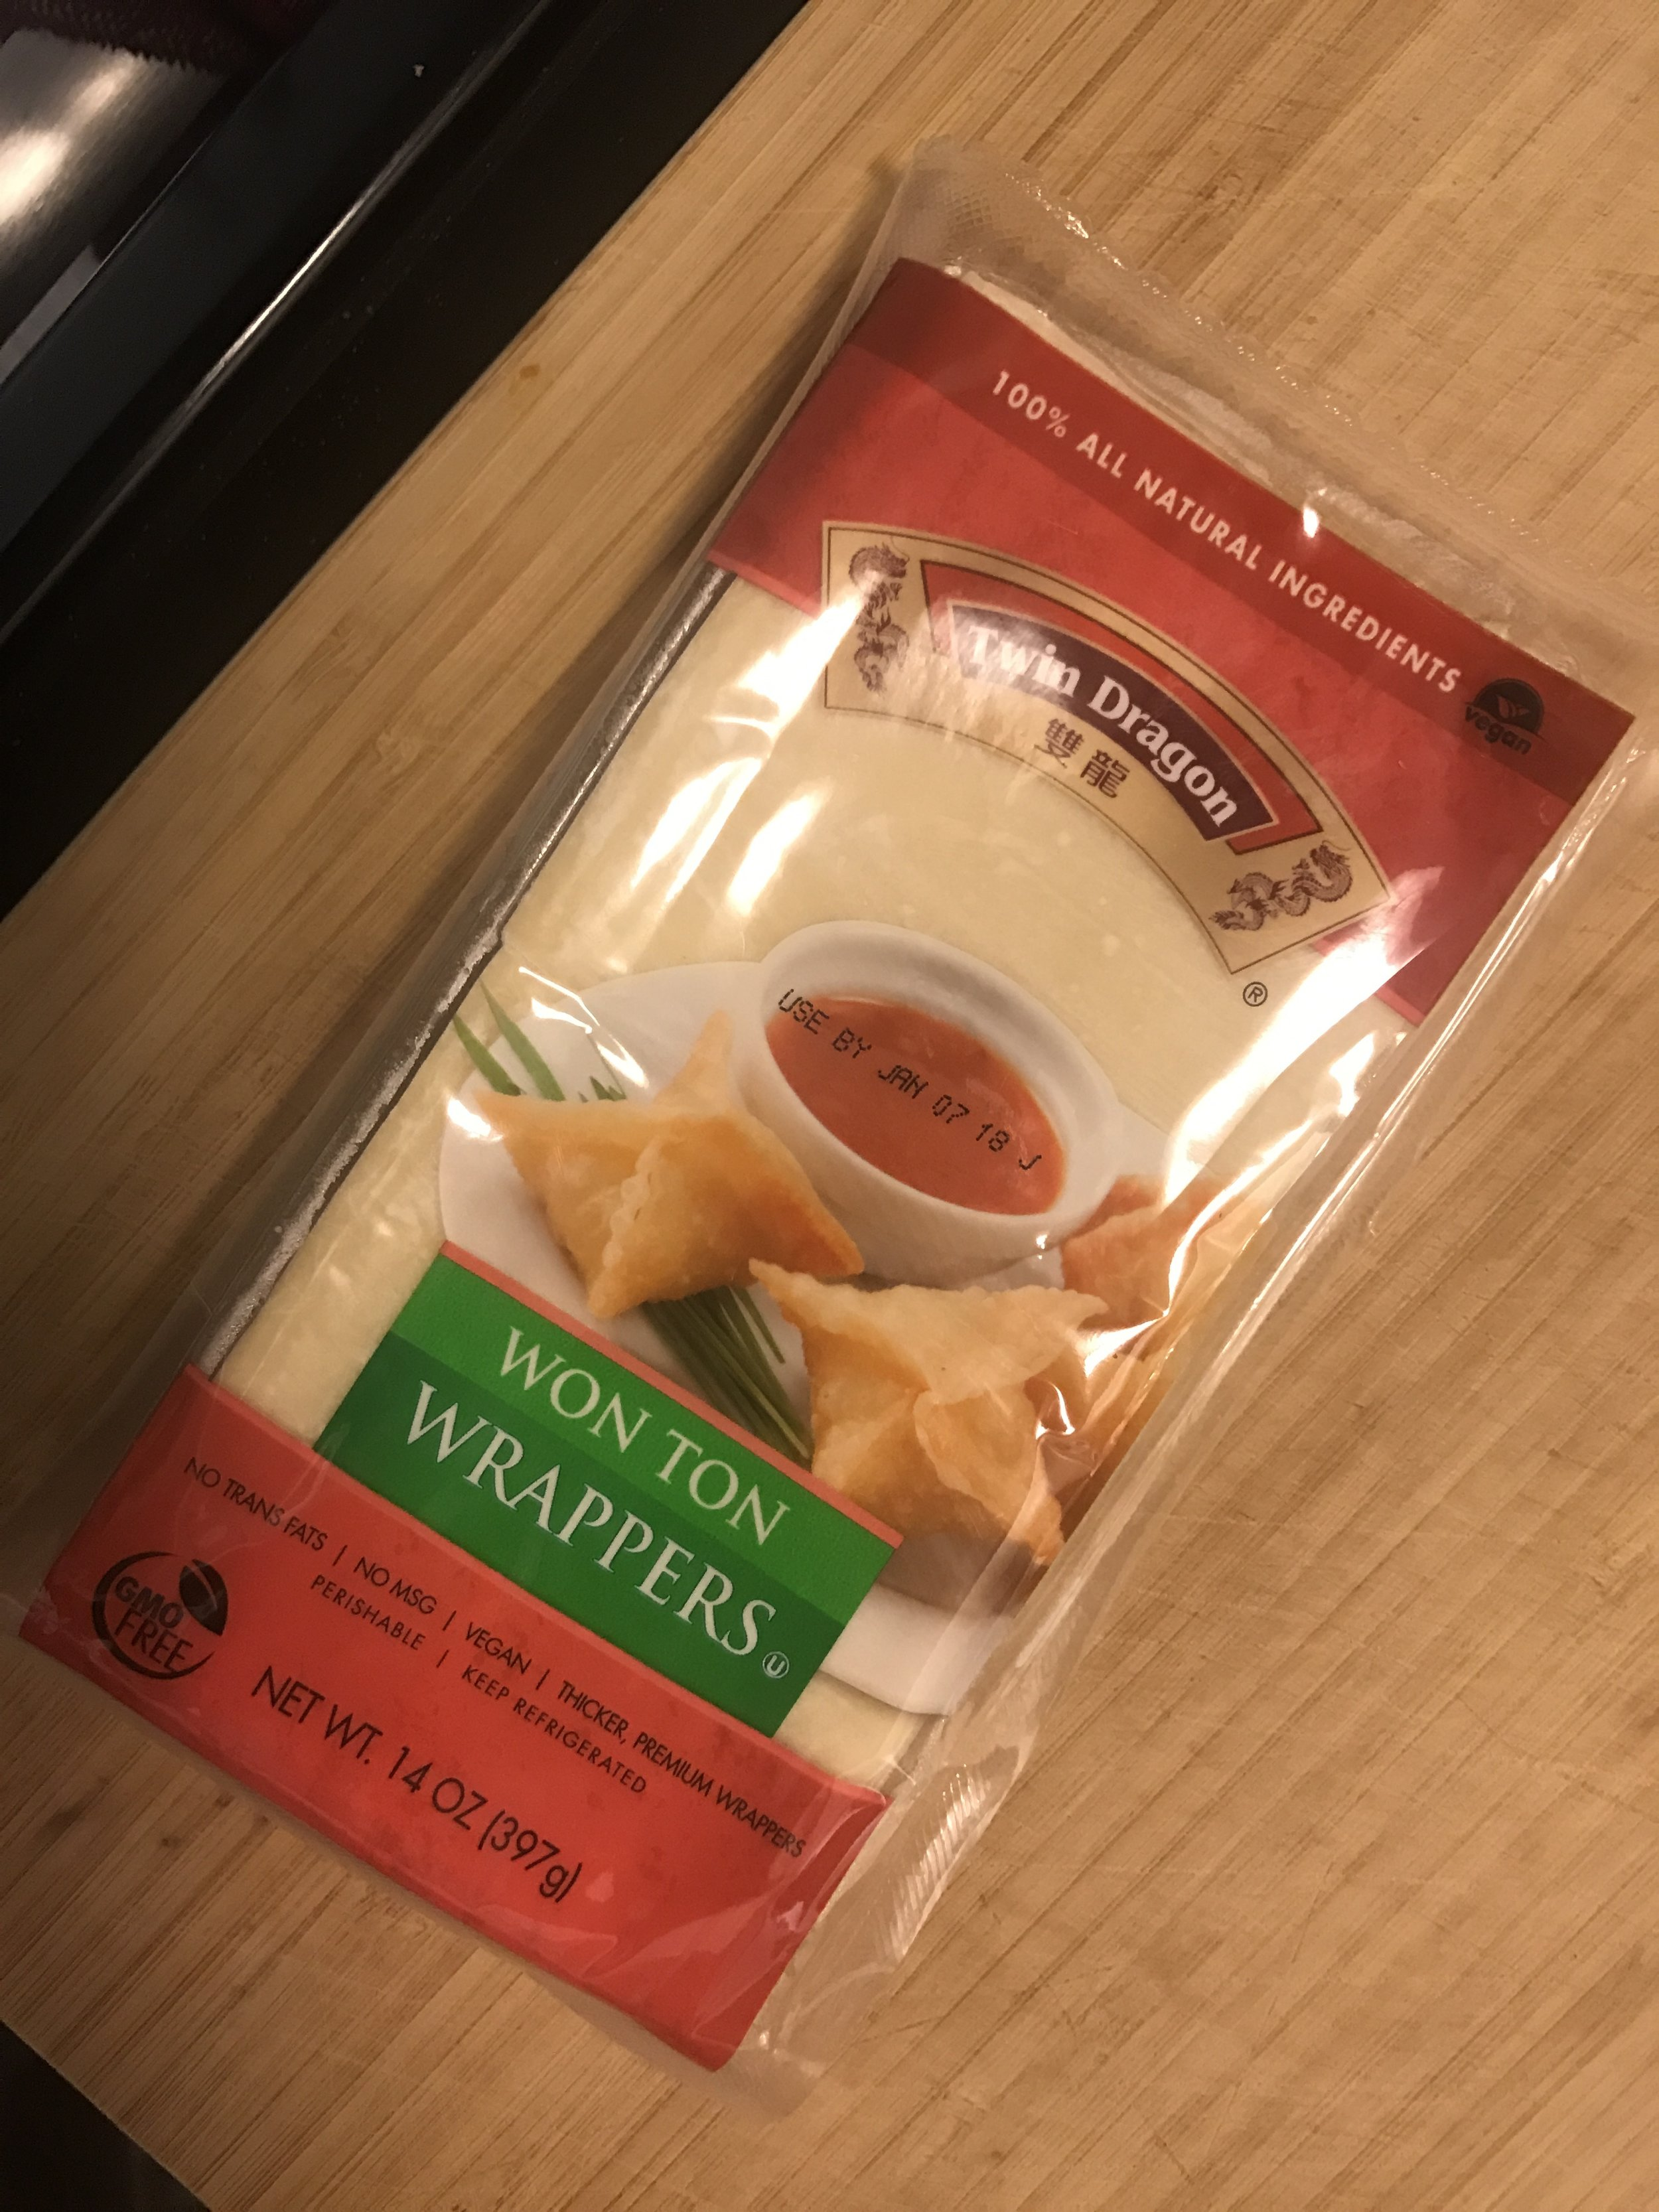 This is the Vegan Wonton Brand that I used.